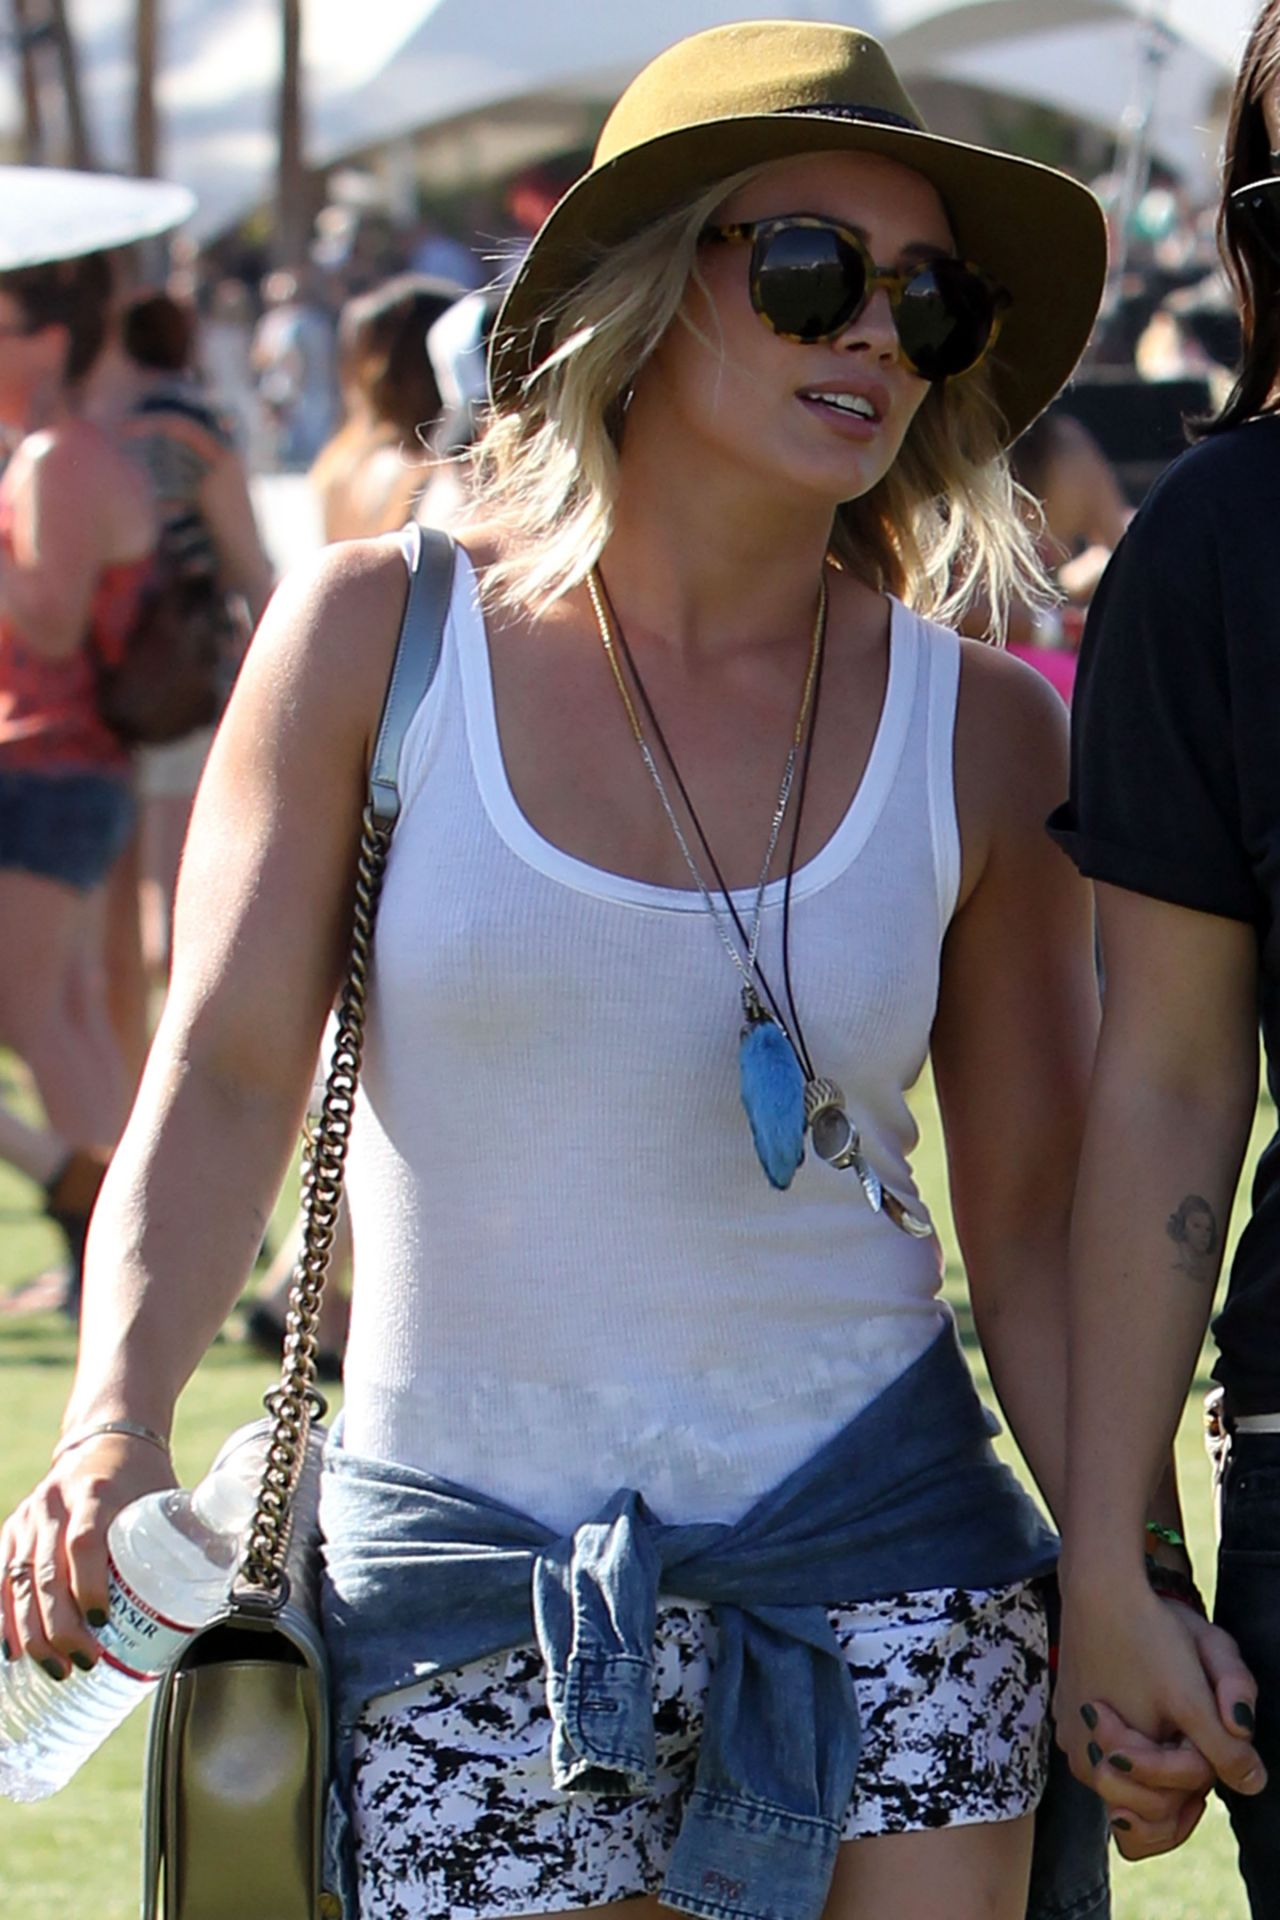 Hilary Duff at Coachella - April 2014